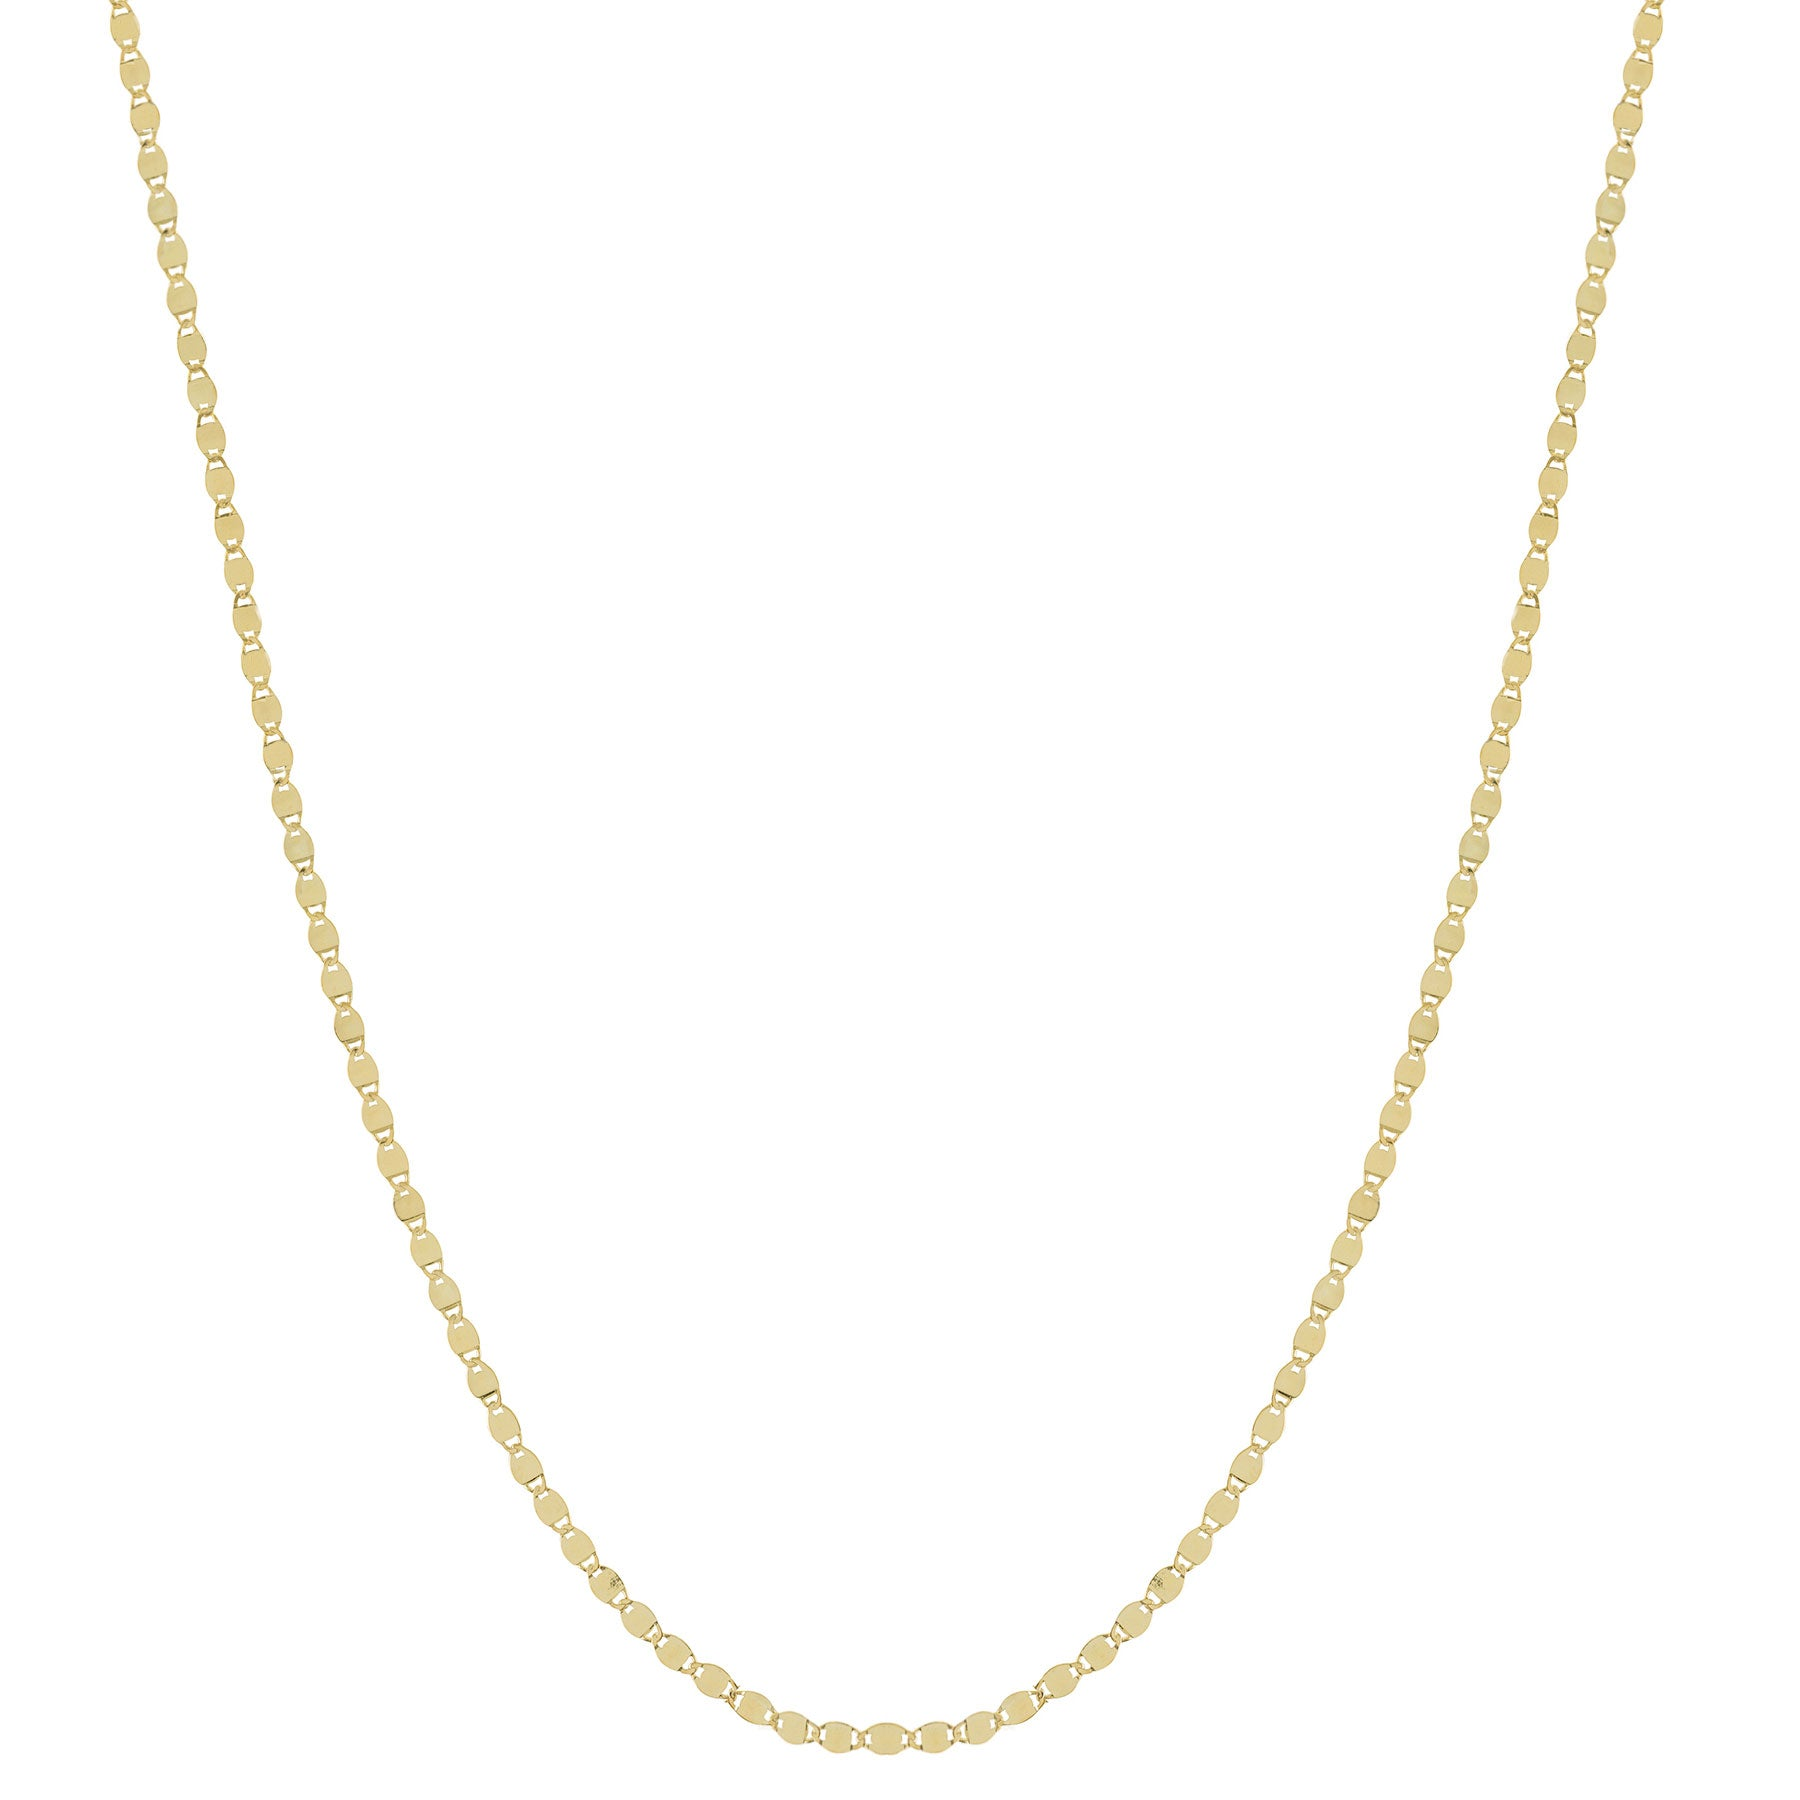 Flat Mirror Chain Necklace, 36 Inches, 14K Yellow Gold